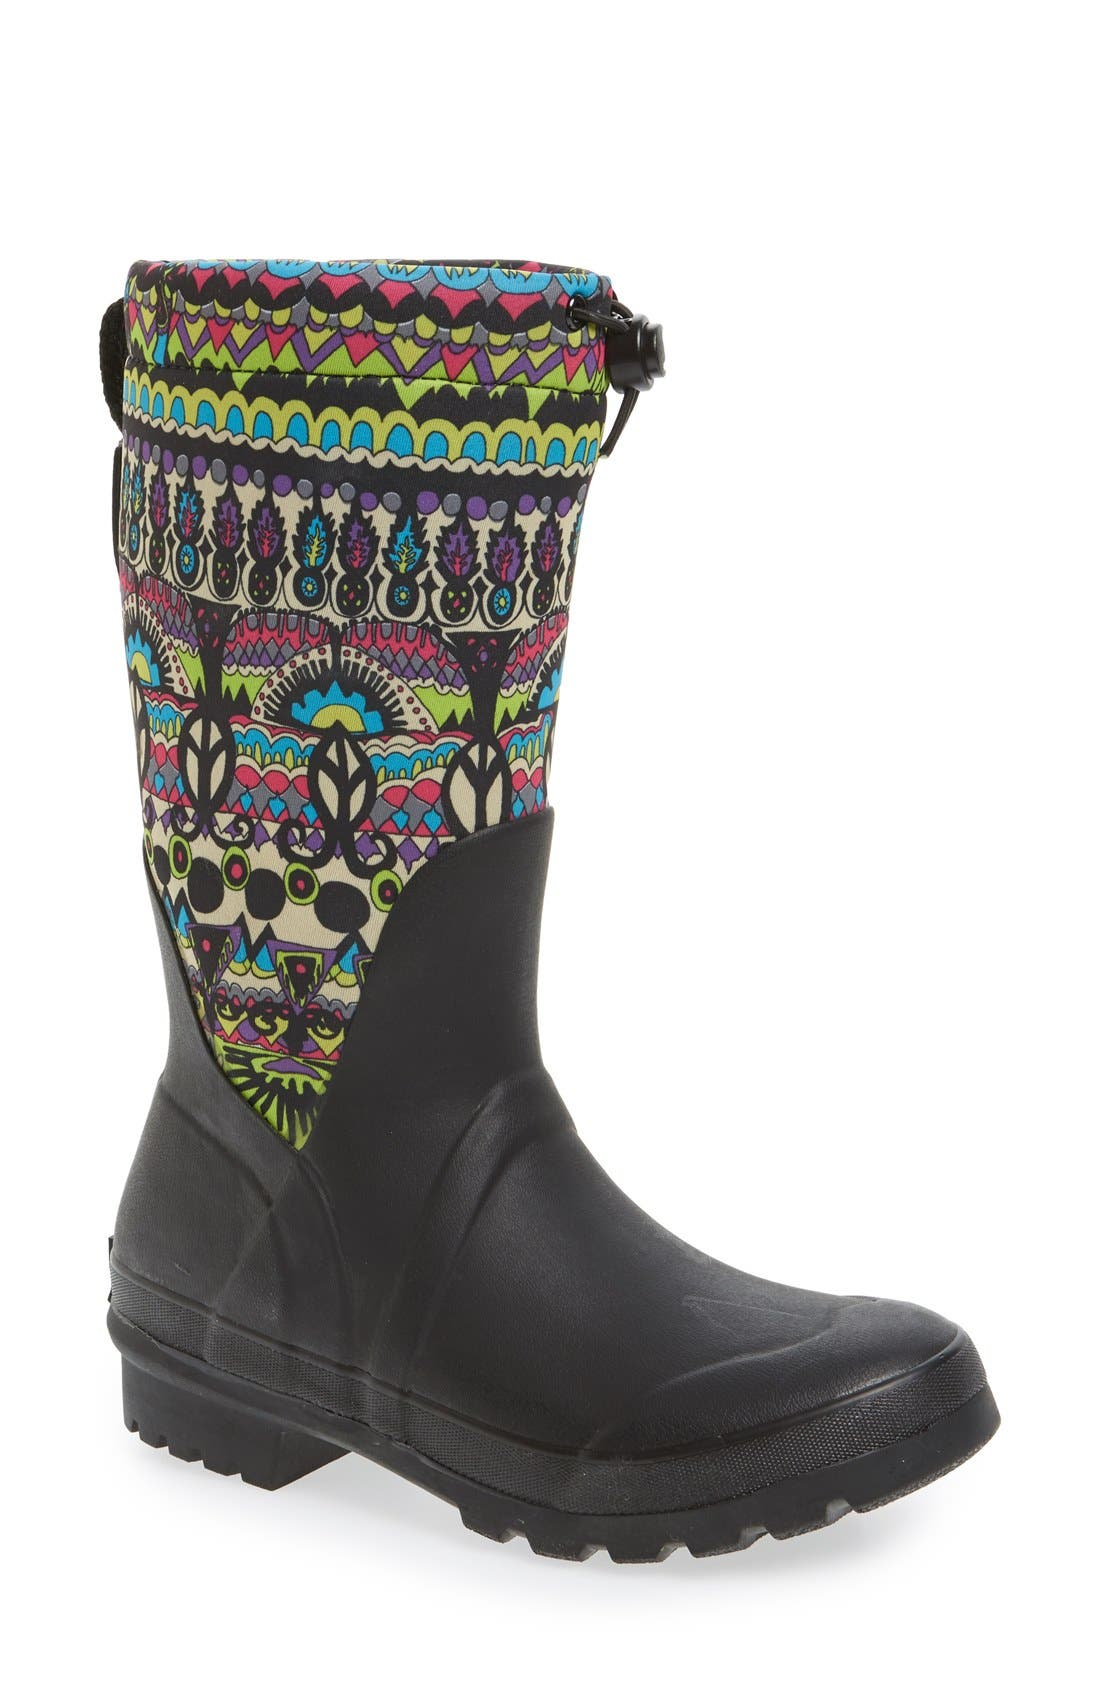 Sakroots 'Mezzo' Waterproof Rain Boot (Women)